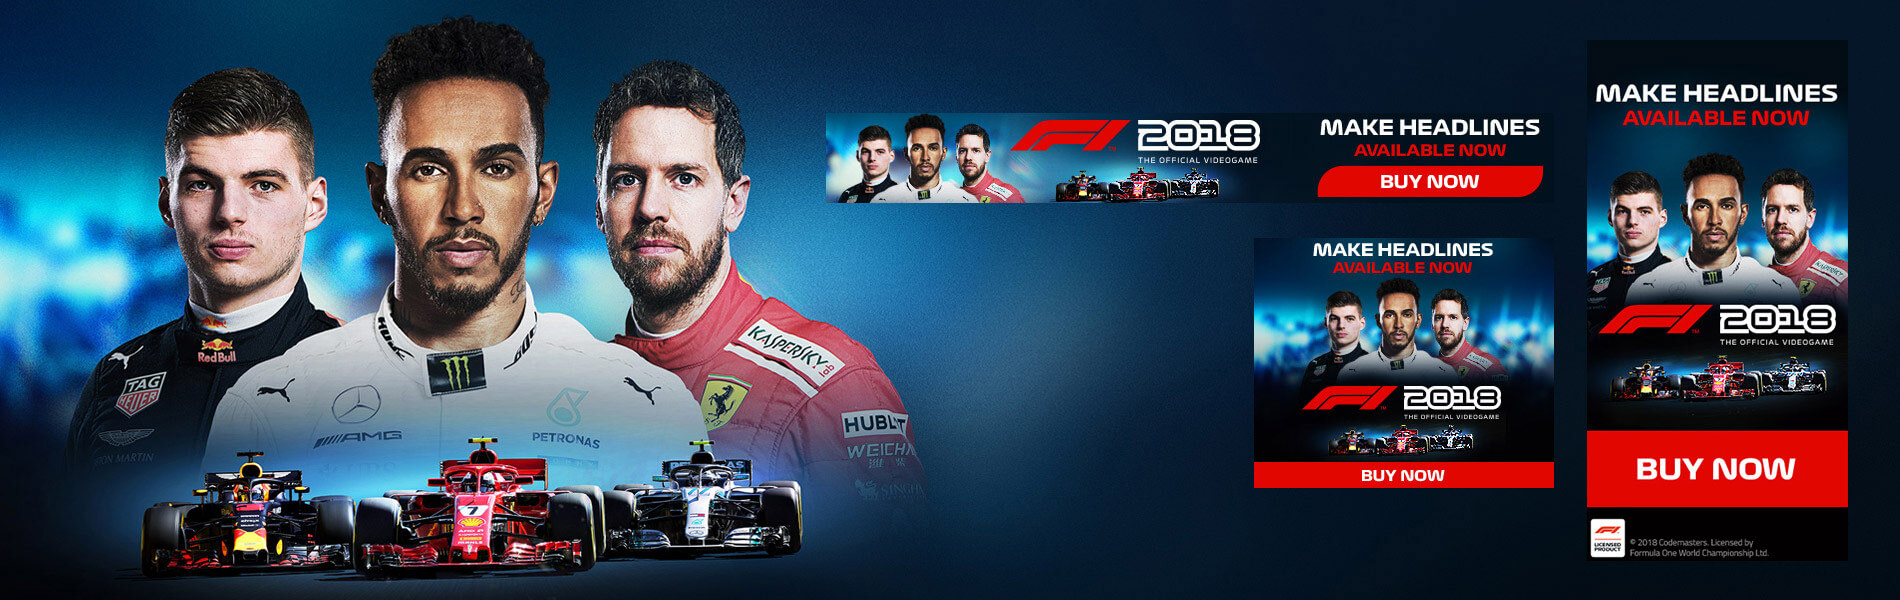 F1 Digital Banners